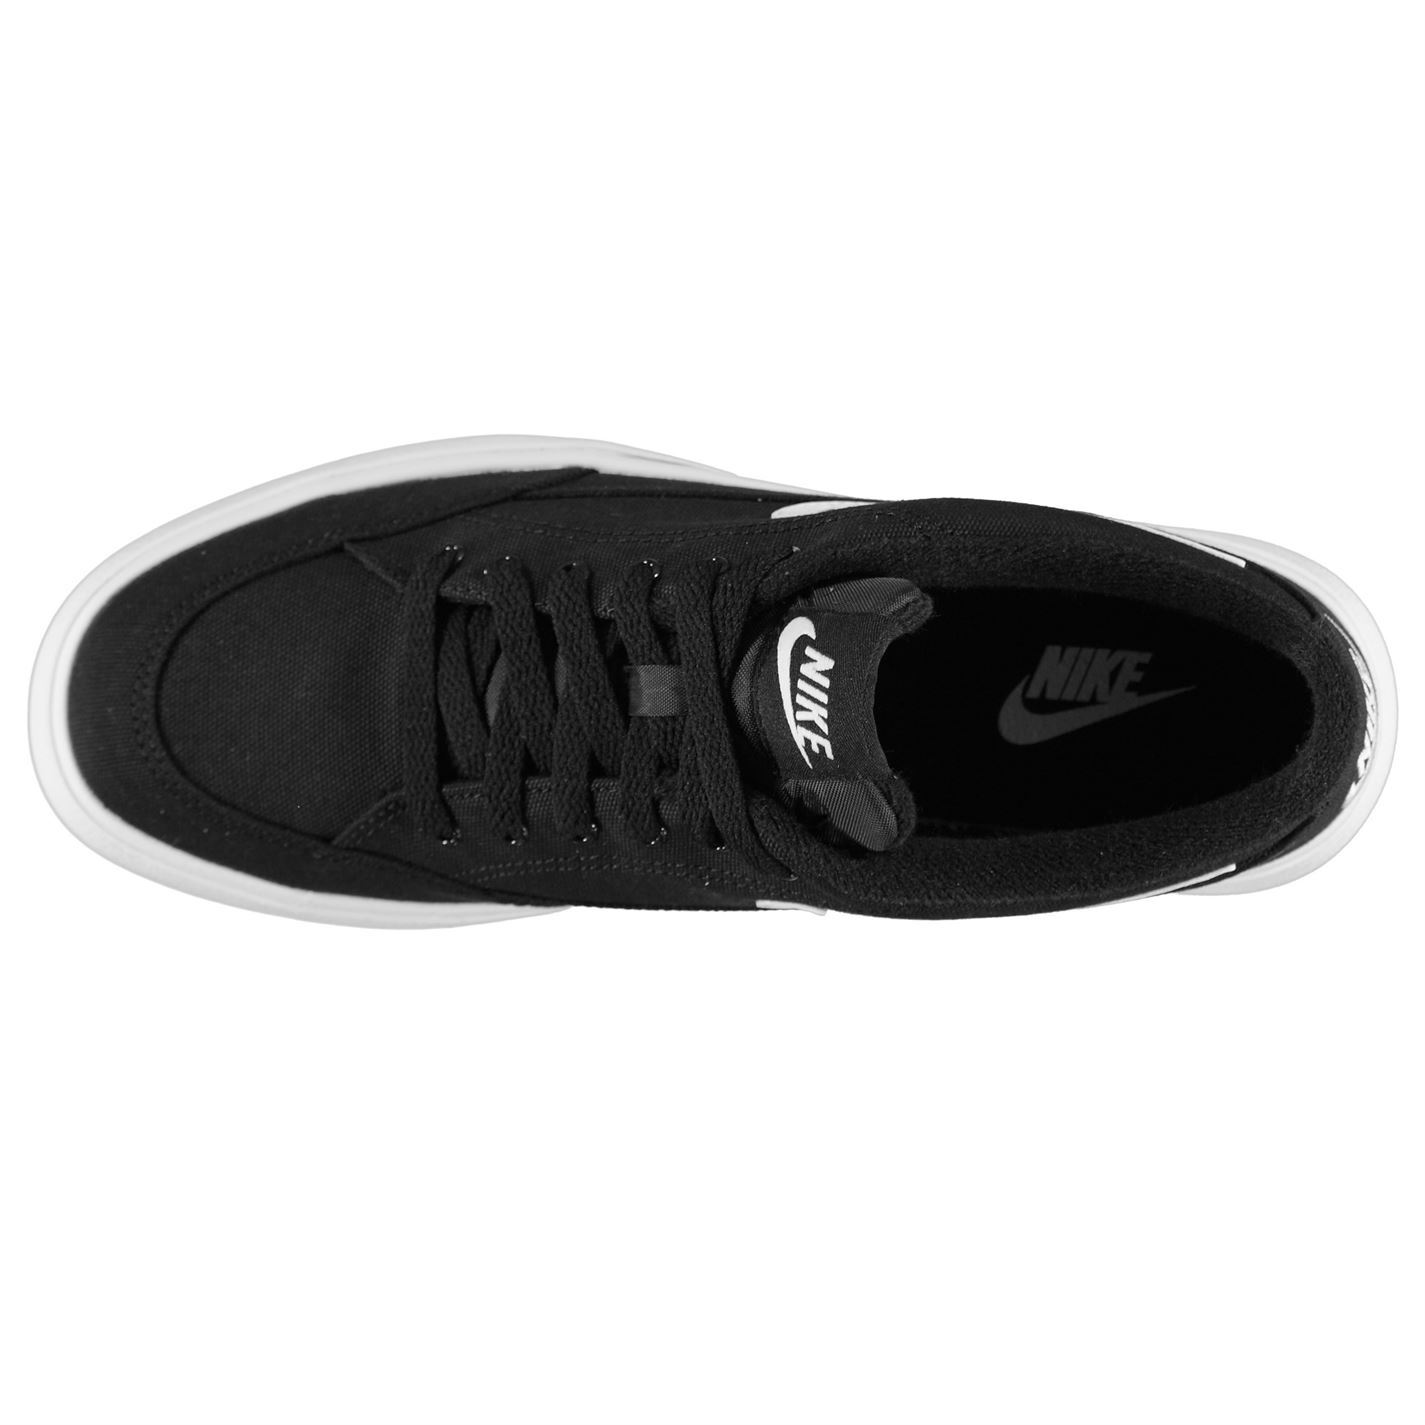 95df9e324a96 ... Nike GTS 16 Canvas Shoes Mens Black Footwear Trainers Sneakers